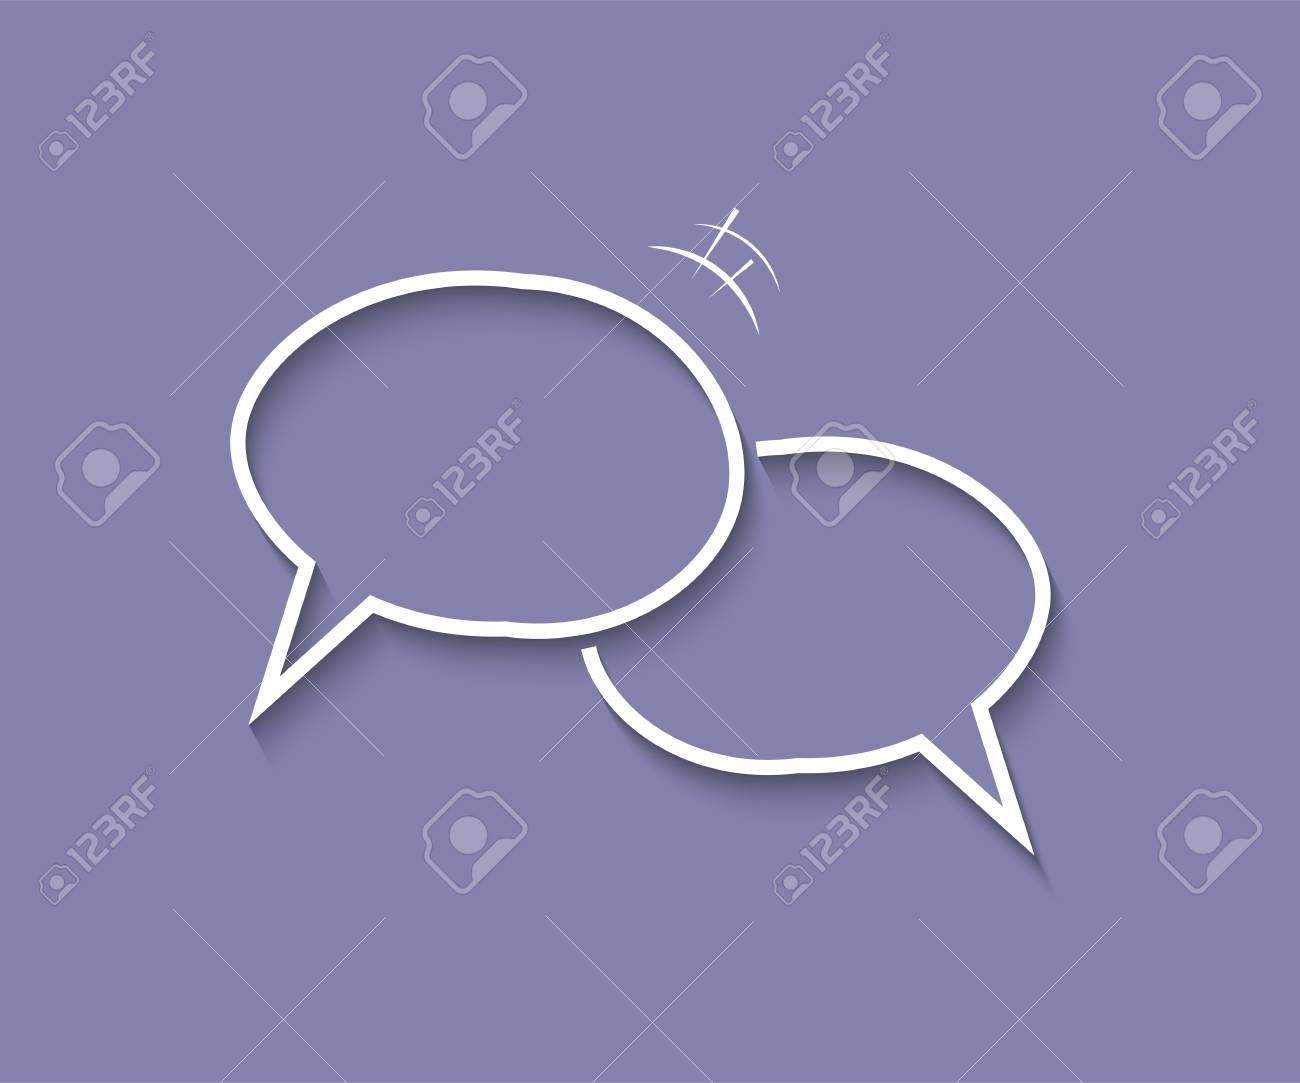 Dialog template. Two blank overlapping speech bubbles with shadows on blue background. Vector illustration - 126293210